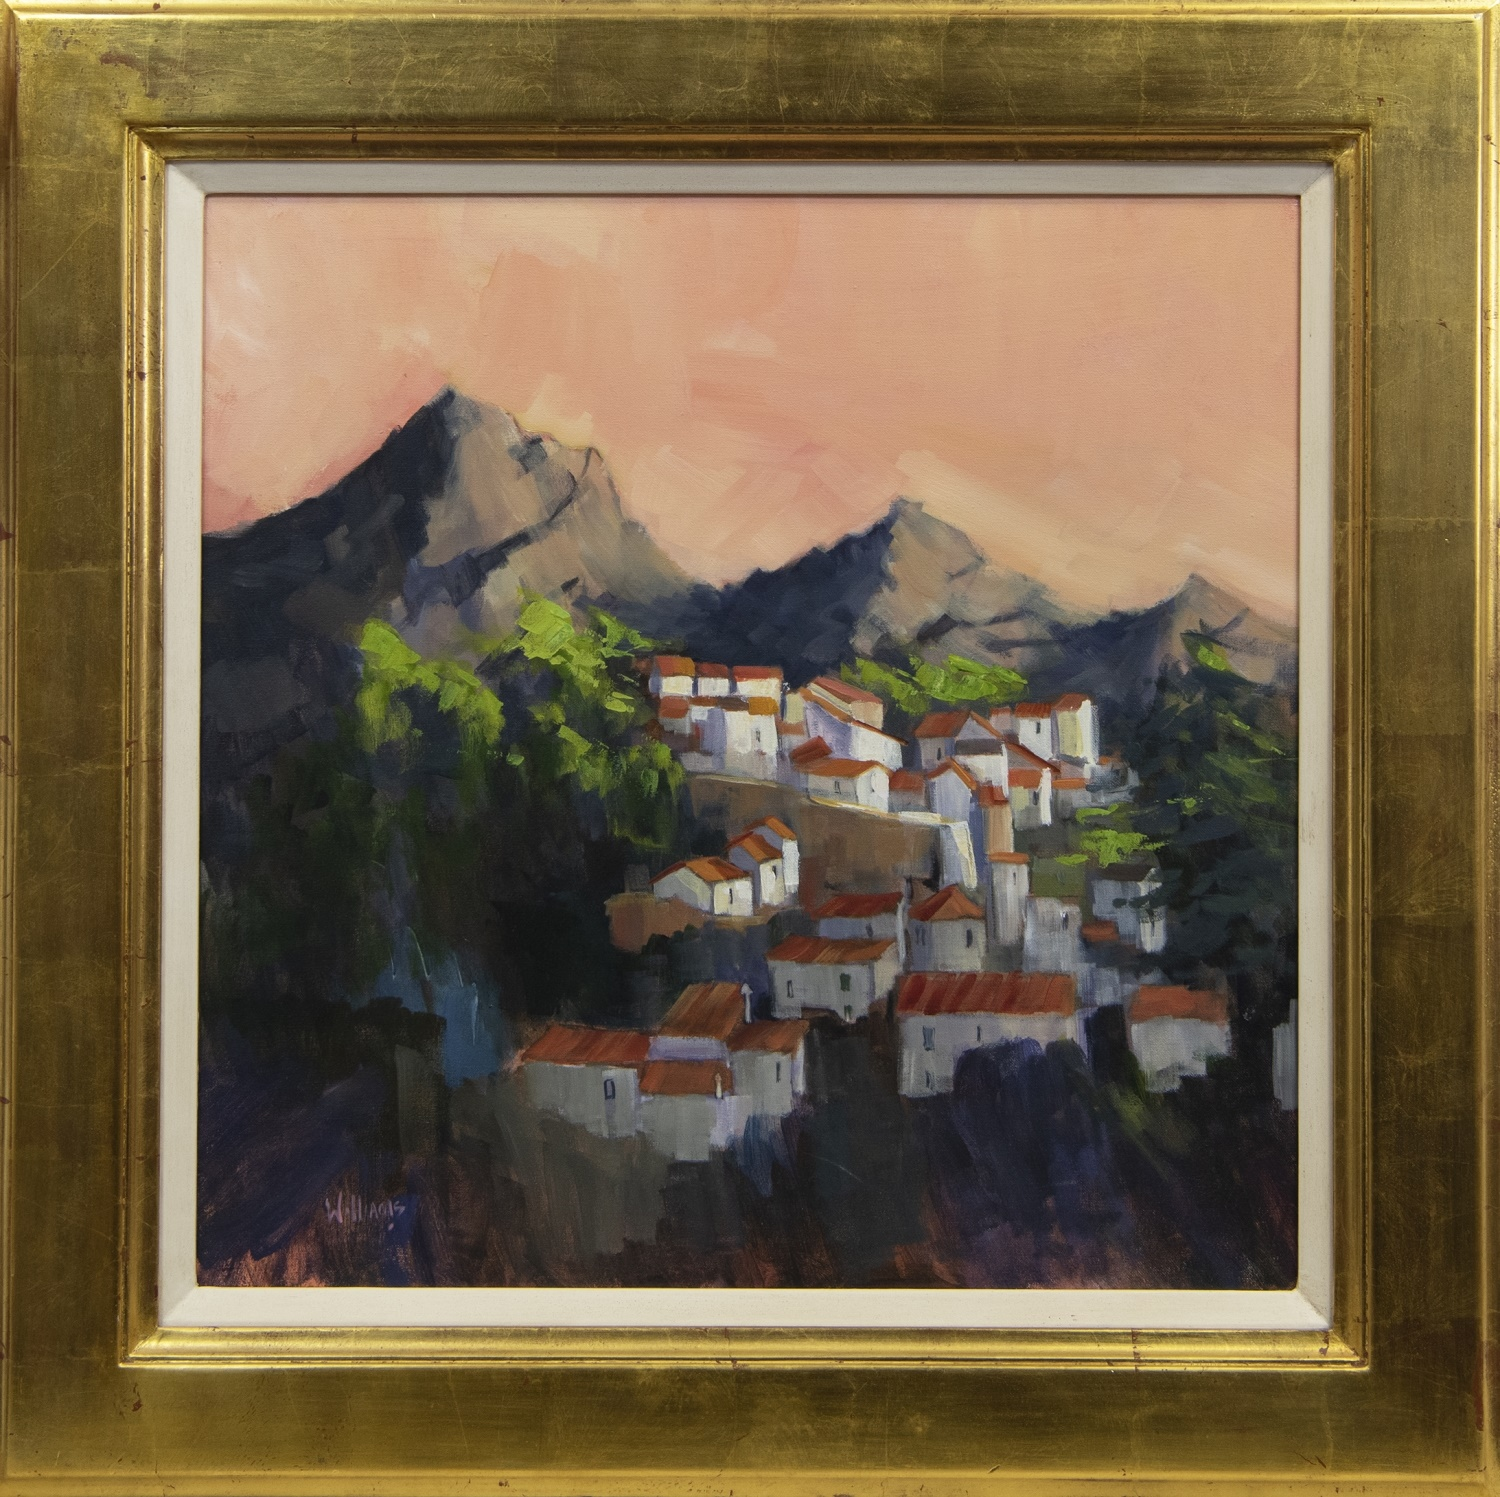 LAST LIGHT, ANDALUSIAN VILLAGE, AN ACRYLIC BY DOREEN WILLIAMS